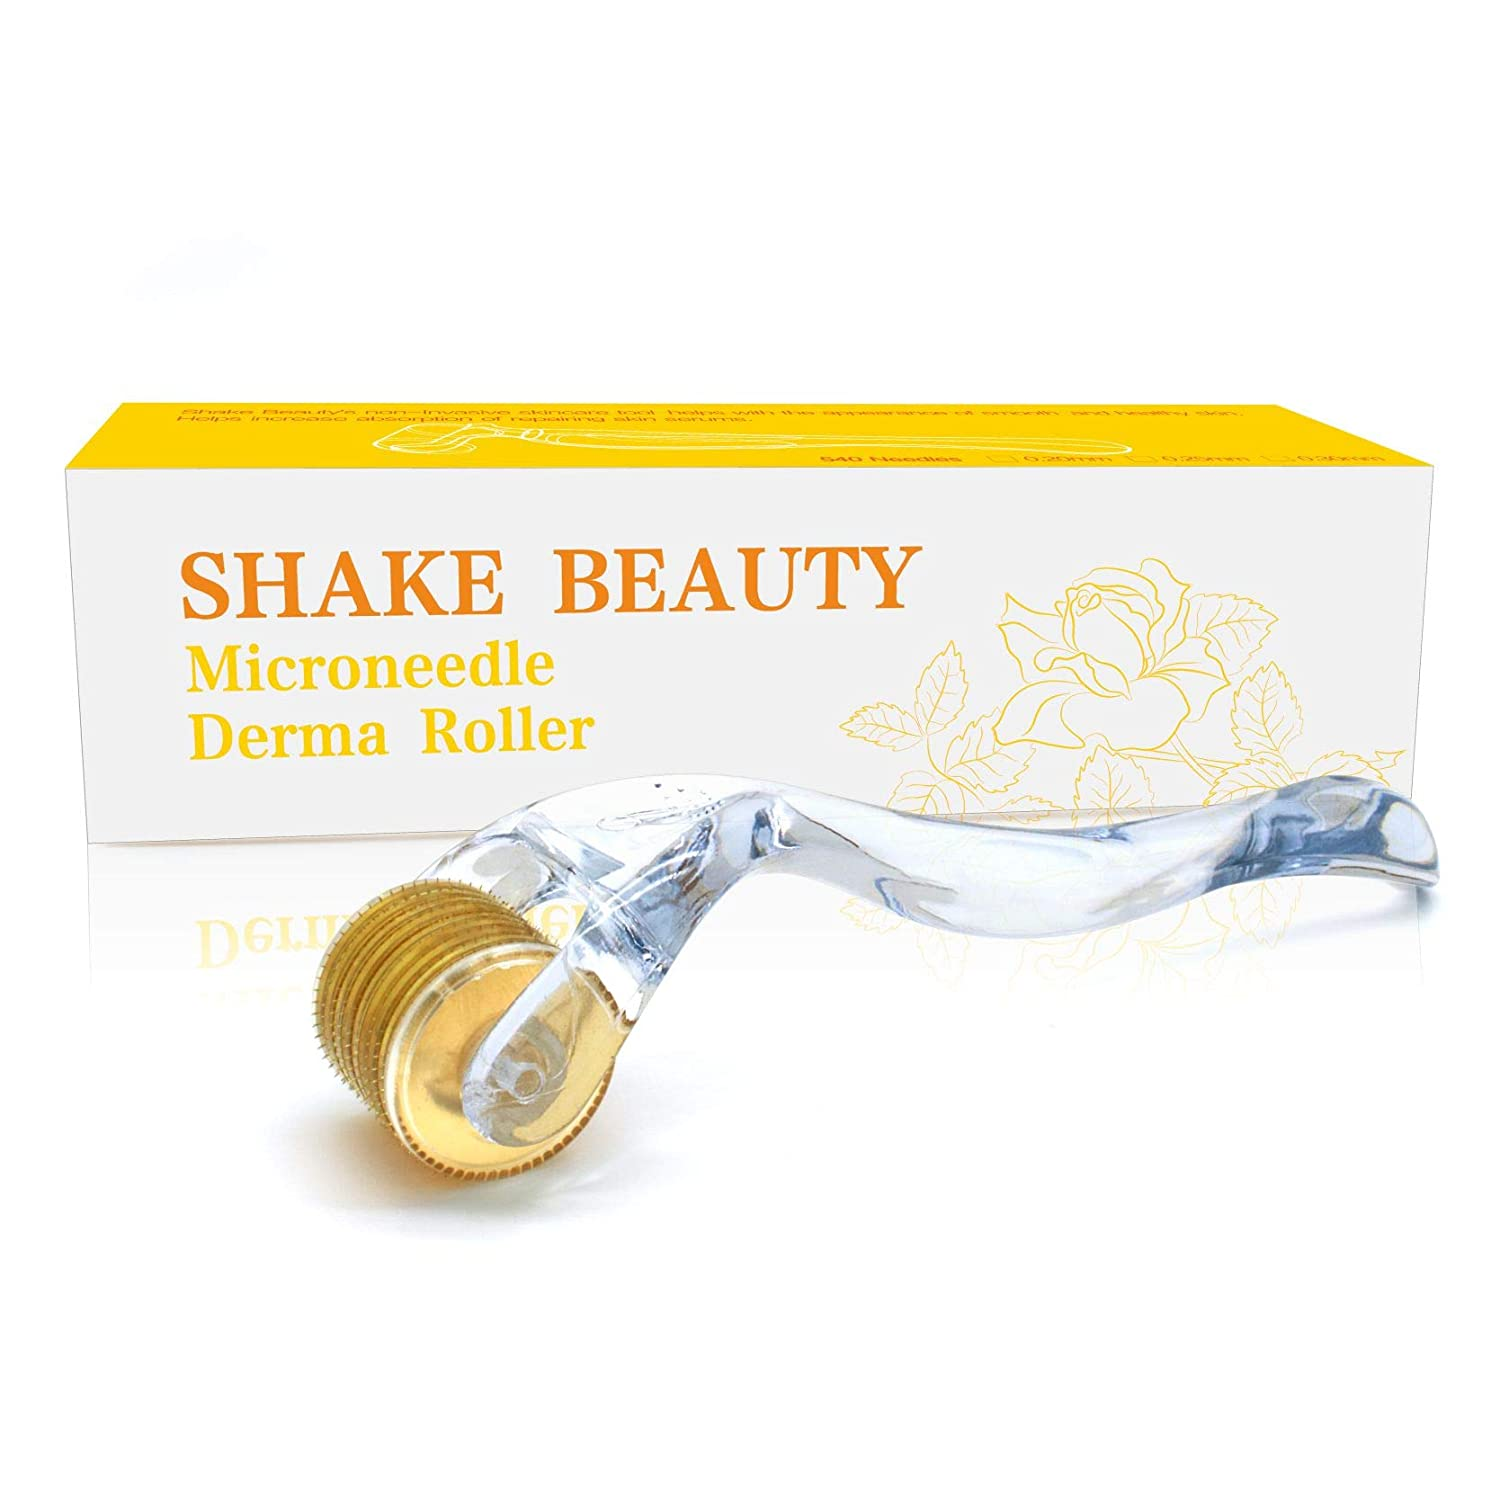 Derma Roller for Face 0.3mm - Cosmetic Microneedle Roller for Face 540 Titanium Micro Needles - Microdermabrasion - Includes Storage Case Shake Beauty